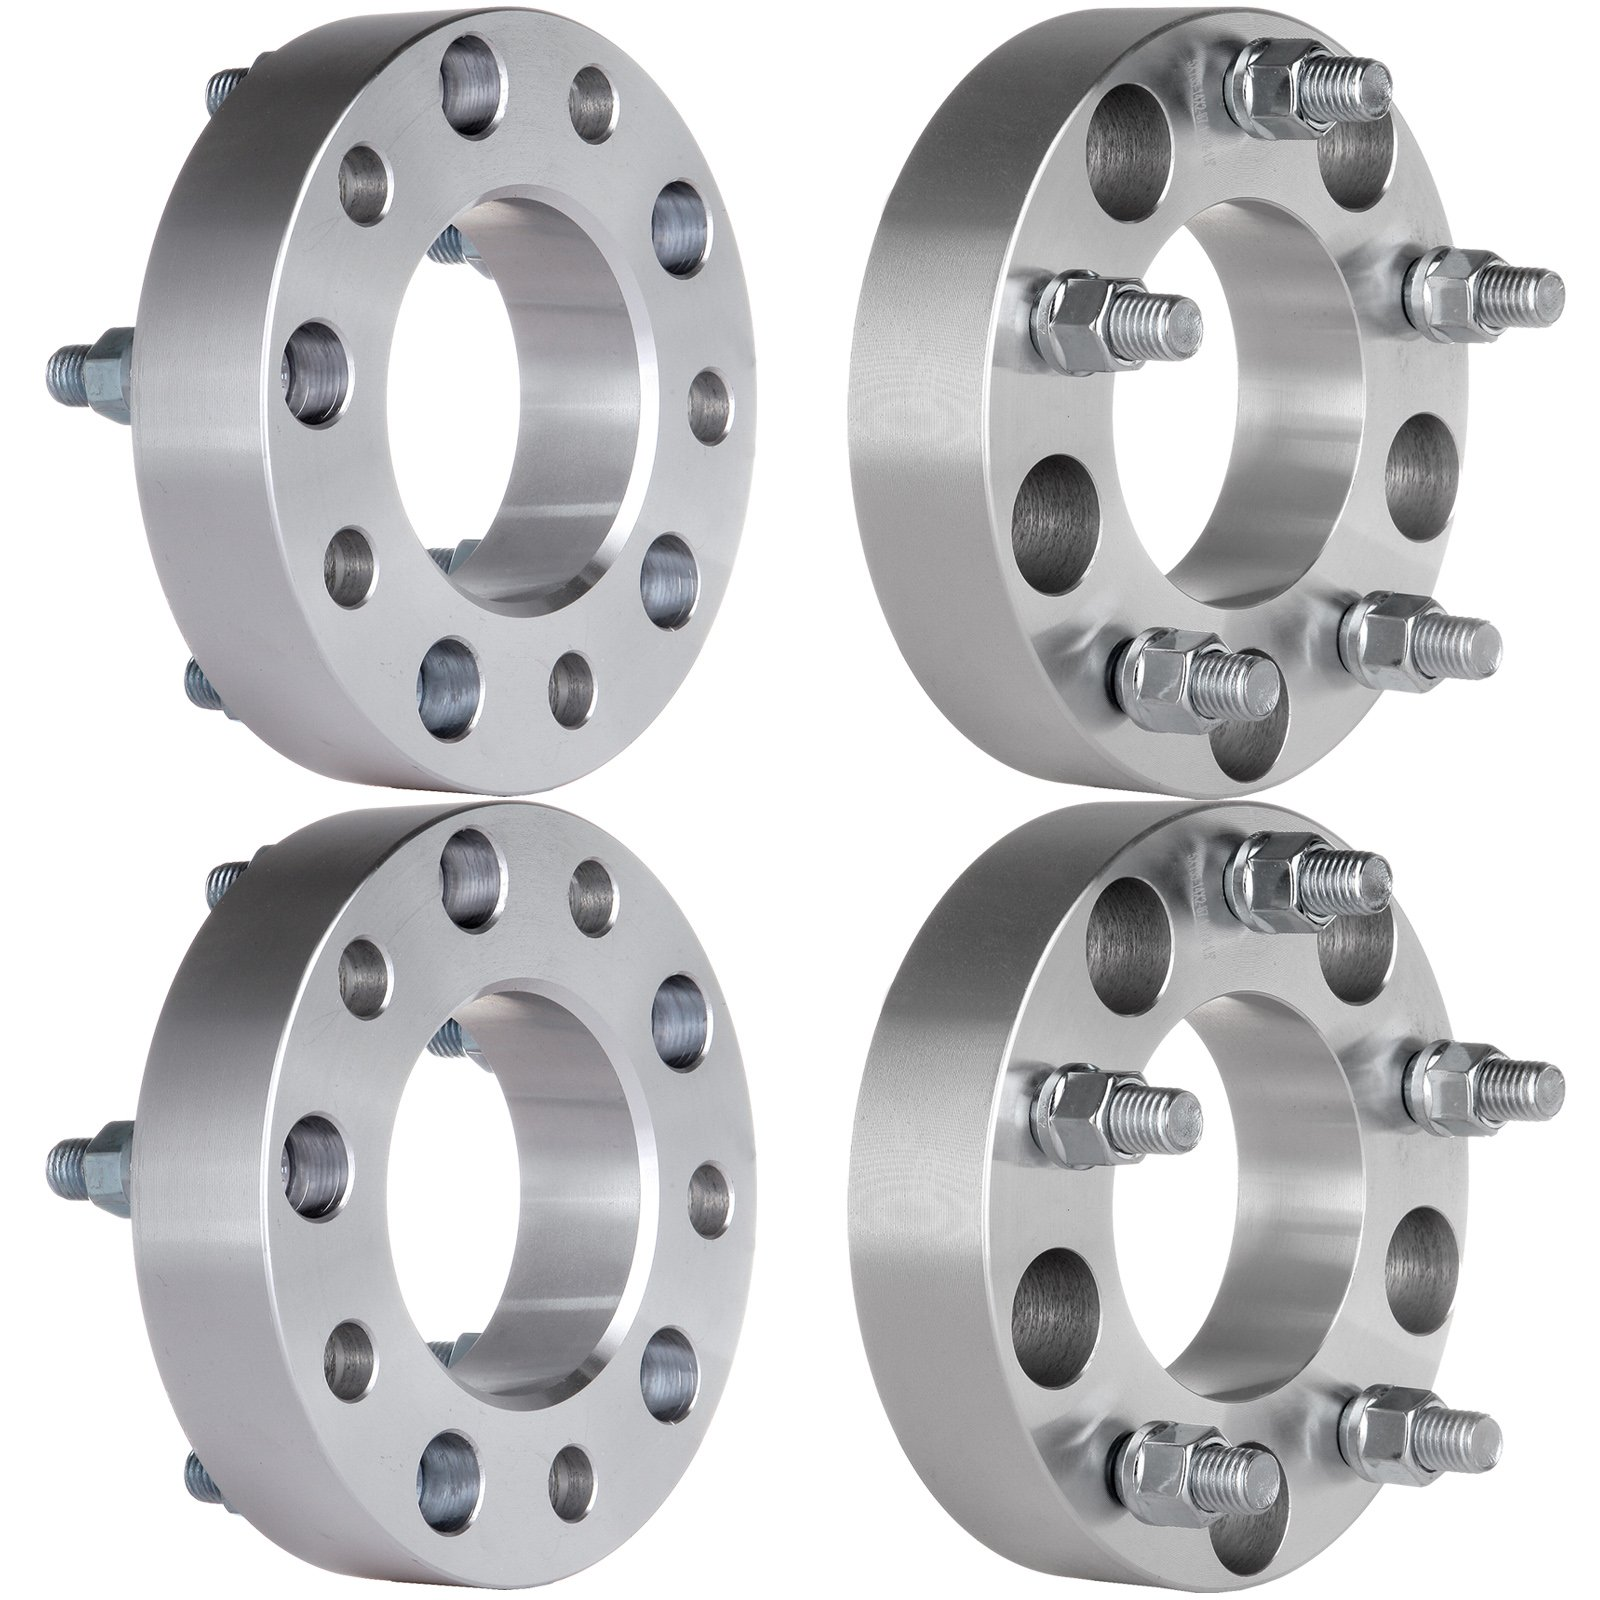 ECCPP Wheel Spacers 4PCS 5Lug 1.5'' Thick 5x135 to 5x135 1998 1999 2000 2001 2002 Ford Expedition F-150 Lincoln Navigator Wheel Spacer 14x2 Studs by ECCPP (Image #3)